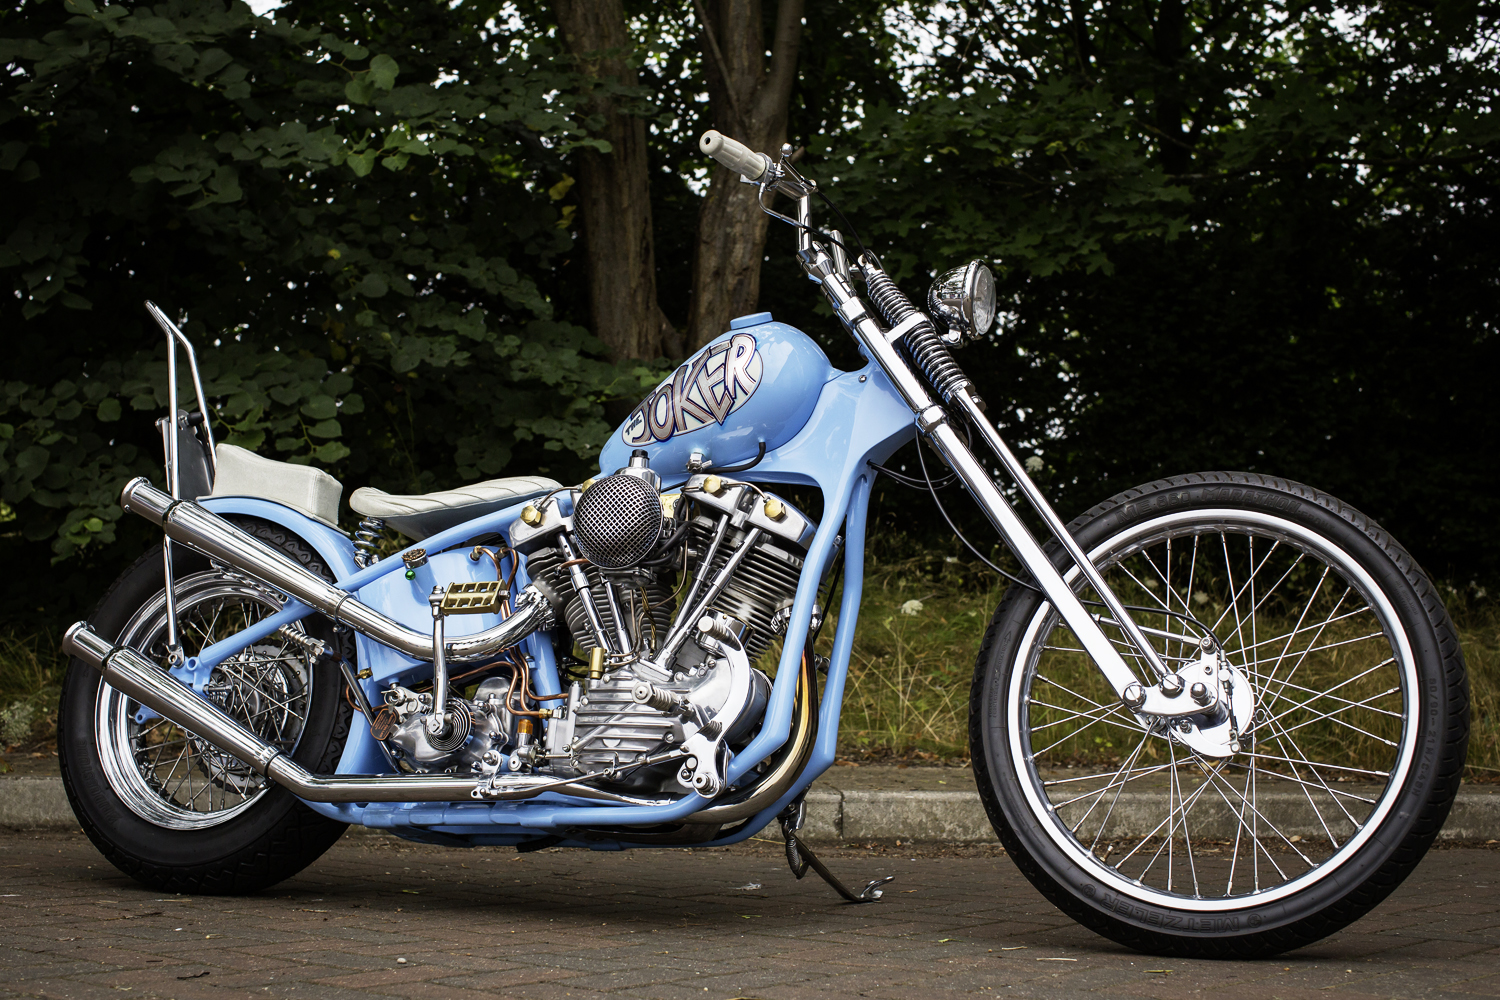 I built this 20 years ago as a Panhead but I took the Pan out and built that into a Pan bobber in a custom frame and now this bike has a Shovel crank and top-end. It's got split heads with external oiling. It's a 1950s wishbone frame with four-inch over Paughco narrow Glide forks and mini front brake. I originally built the bike in my shed at home and got it running right again recently to do the Bulldog Bash on it. The bike definitely has a 1970s-80s vibe and the name comes from the Steve Miller Band song 'The Joker'. There's been a lot of changes at Krazy Horse over the years. When it first started in the shed, Paul and Steve called me over to set up engines. I worked in a Kawasaki dealership at the time, but I've had Harleys for 40 years. They have a 'certain appeal'..